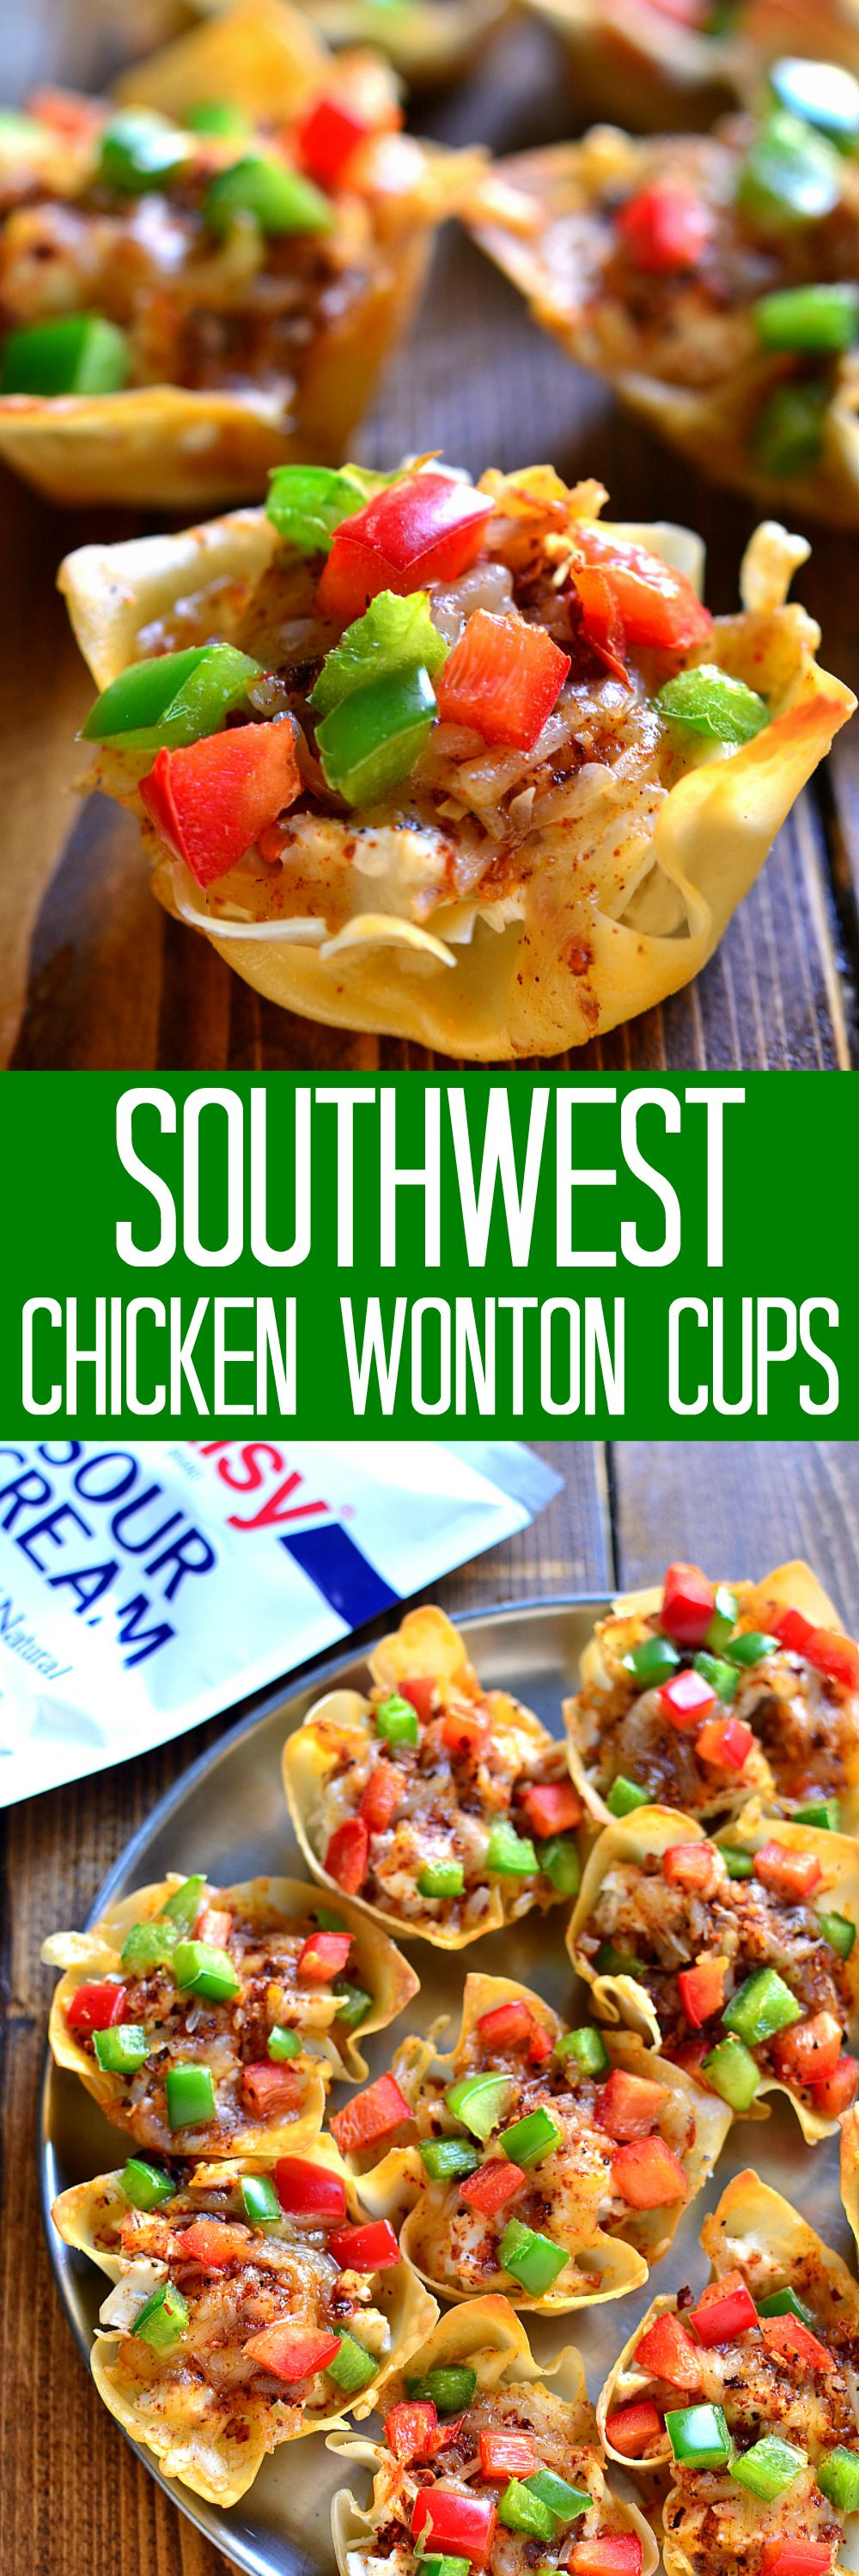 Southwest Chicken Wonton Cups are loaded with creamy